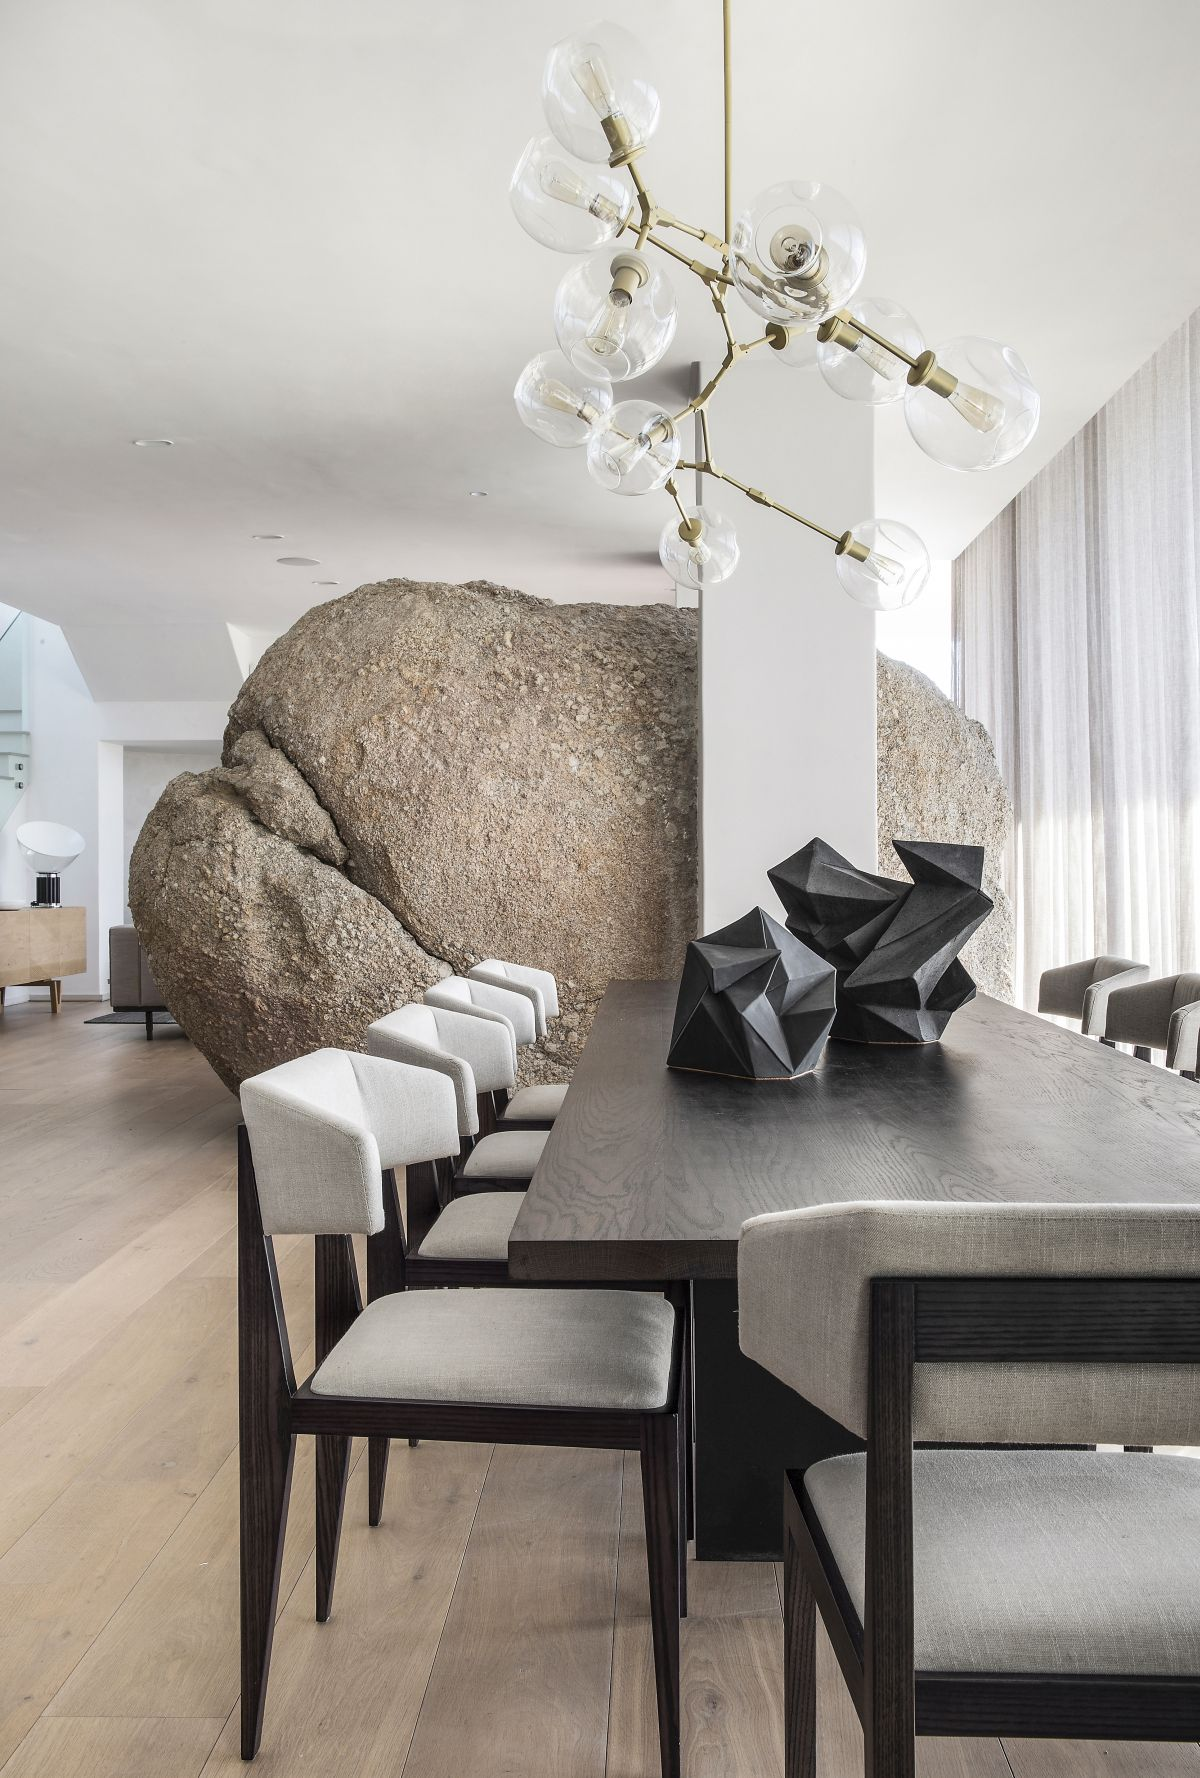 This gorgeous home in cape Town is a waterfront one, and it features luxurious design and an unbelievable space divider   a large rock